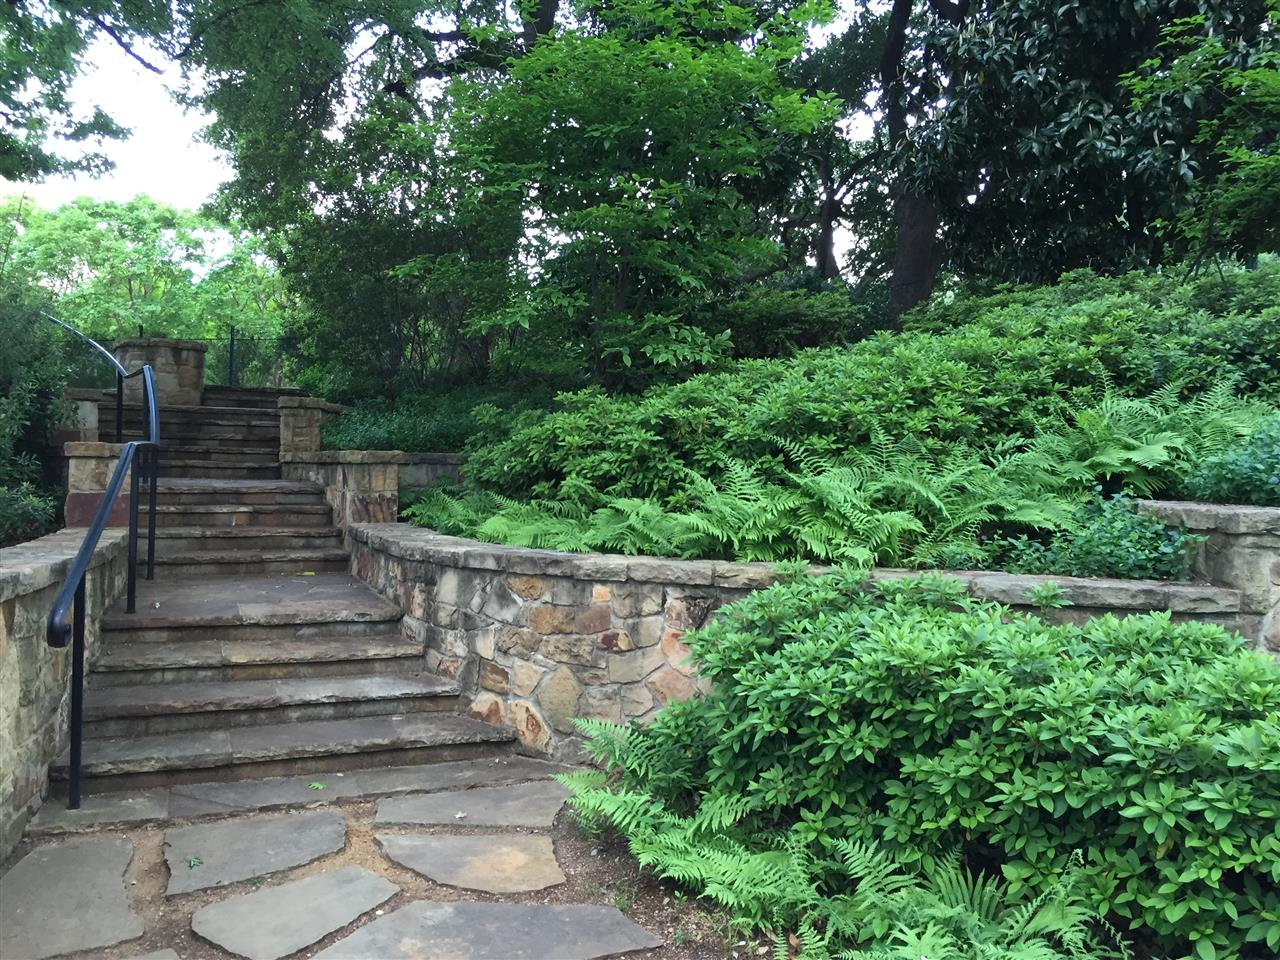 #Turtle Creek, #Lee Park, #Stone steps and path, #Dallas, #Texas